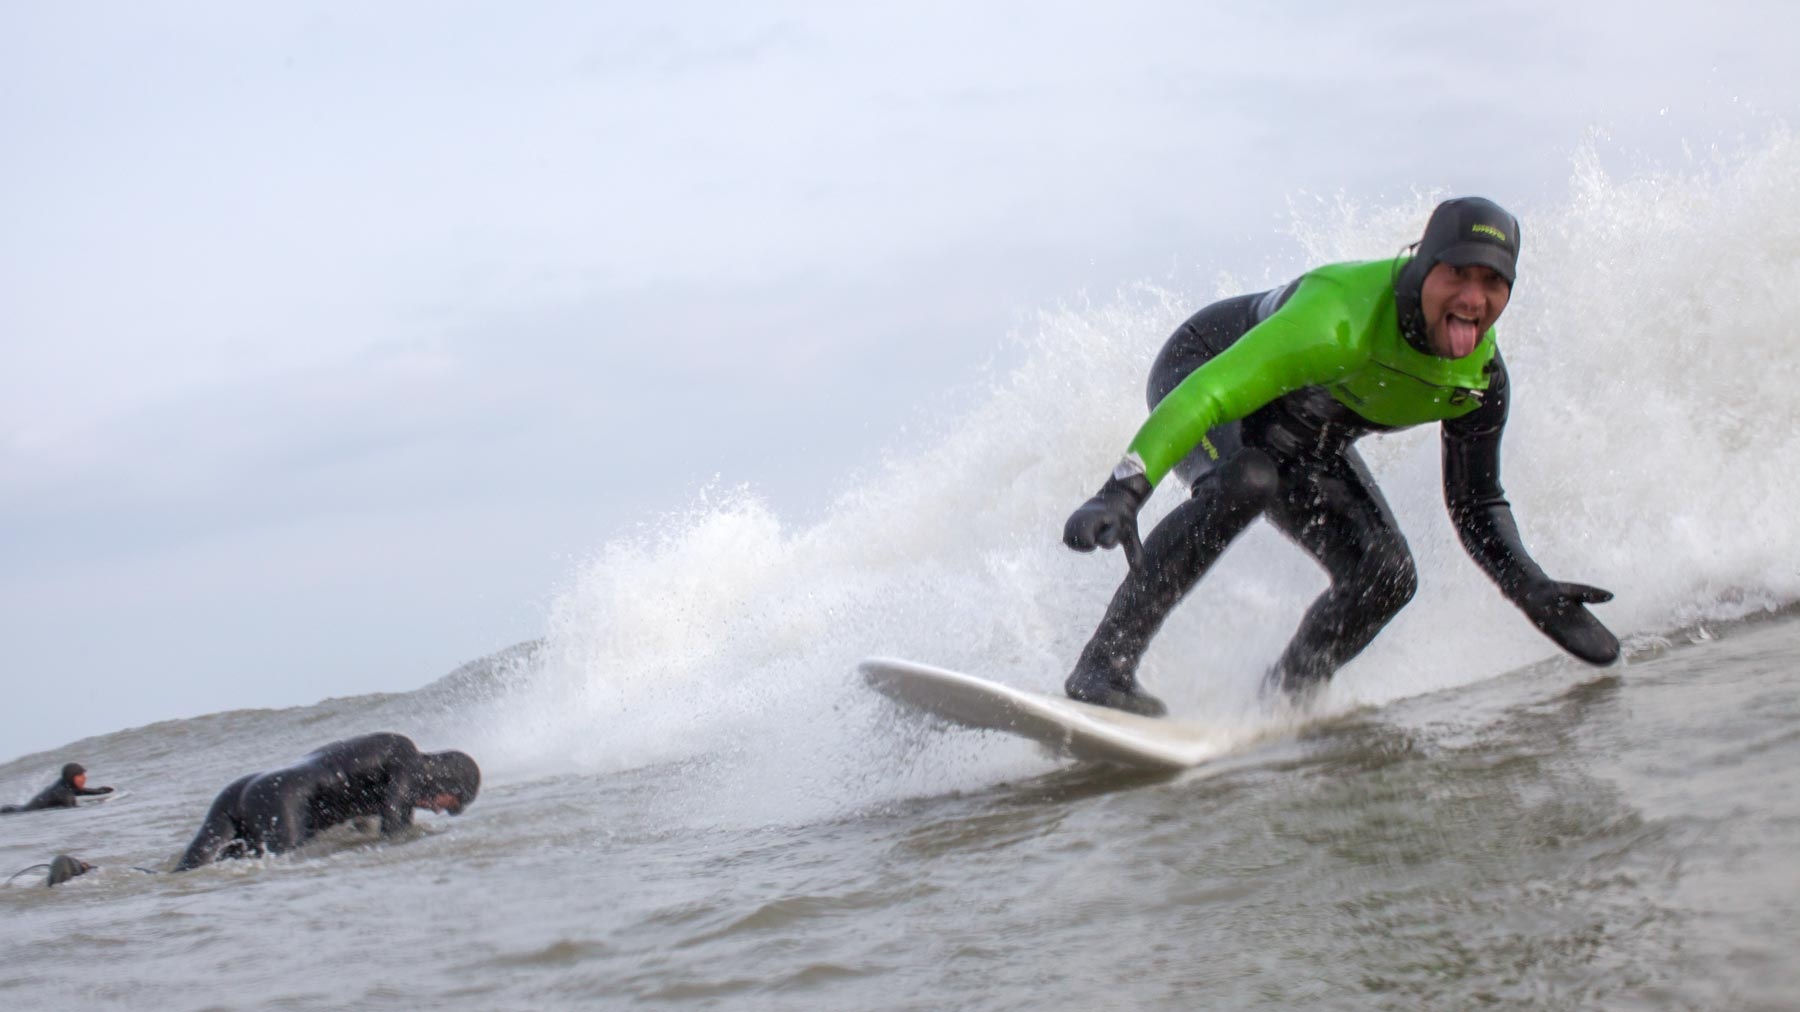 Larry Cavero Great Lakes Surfer